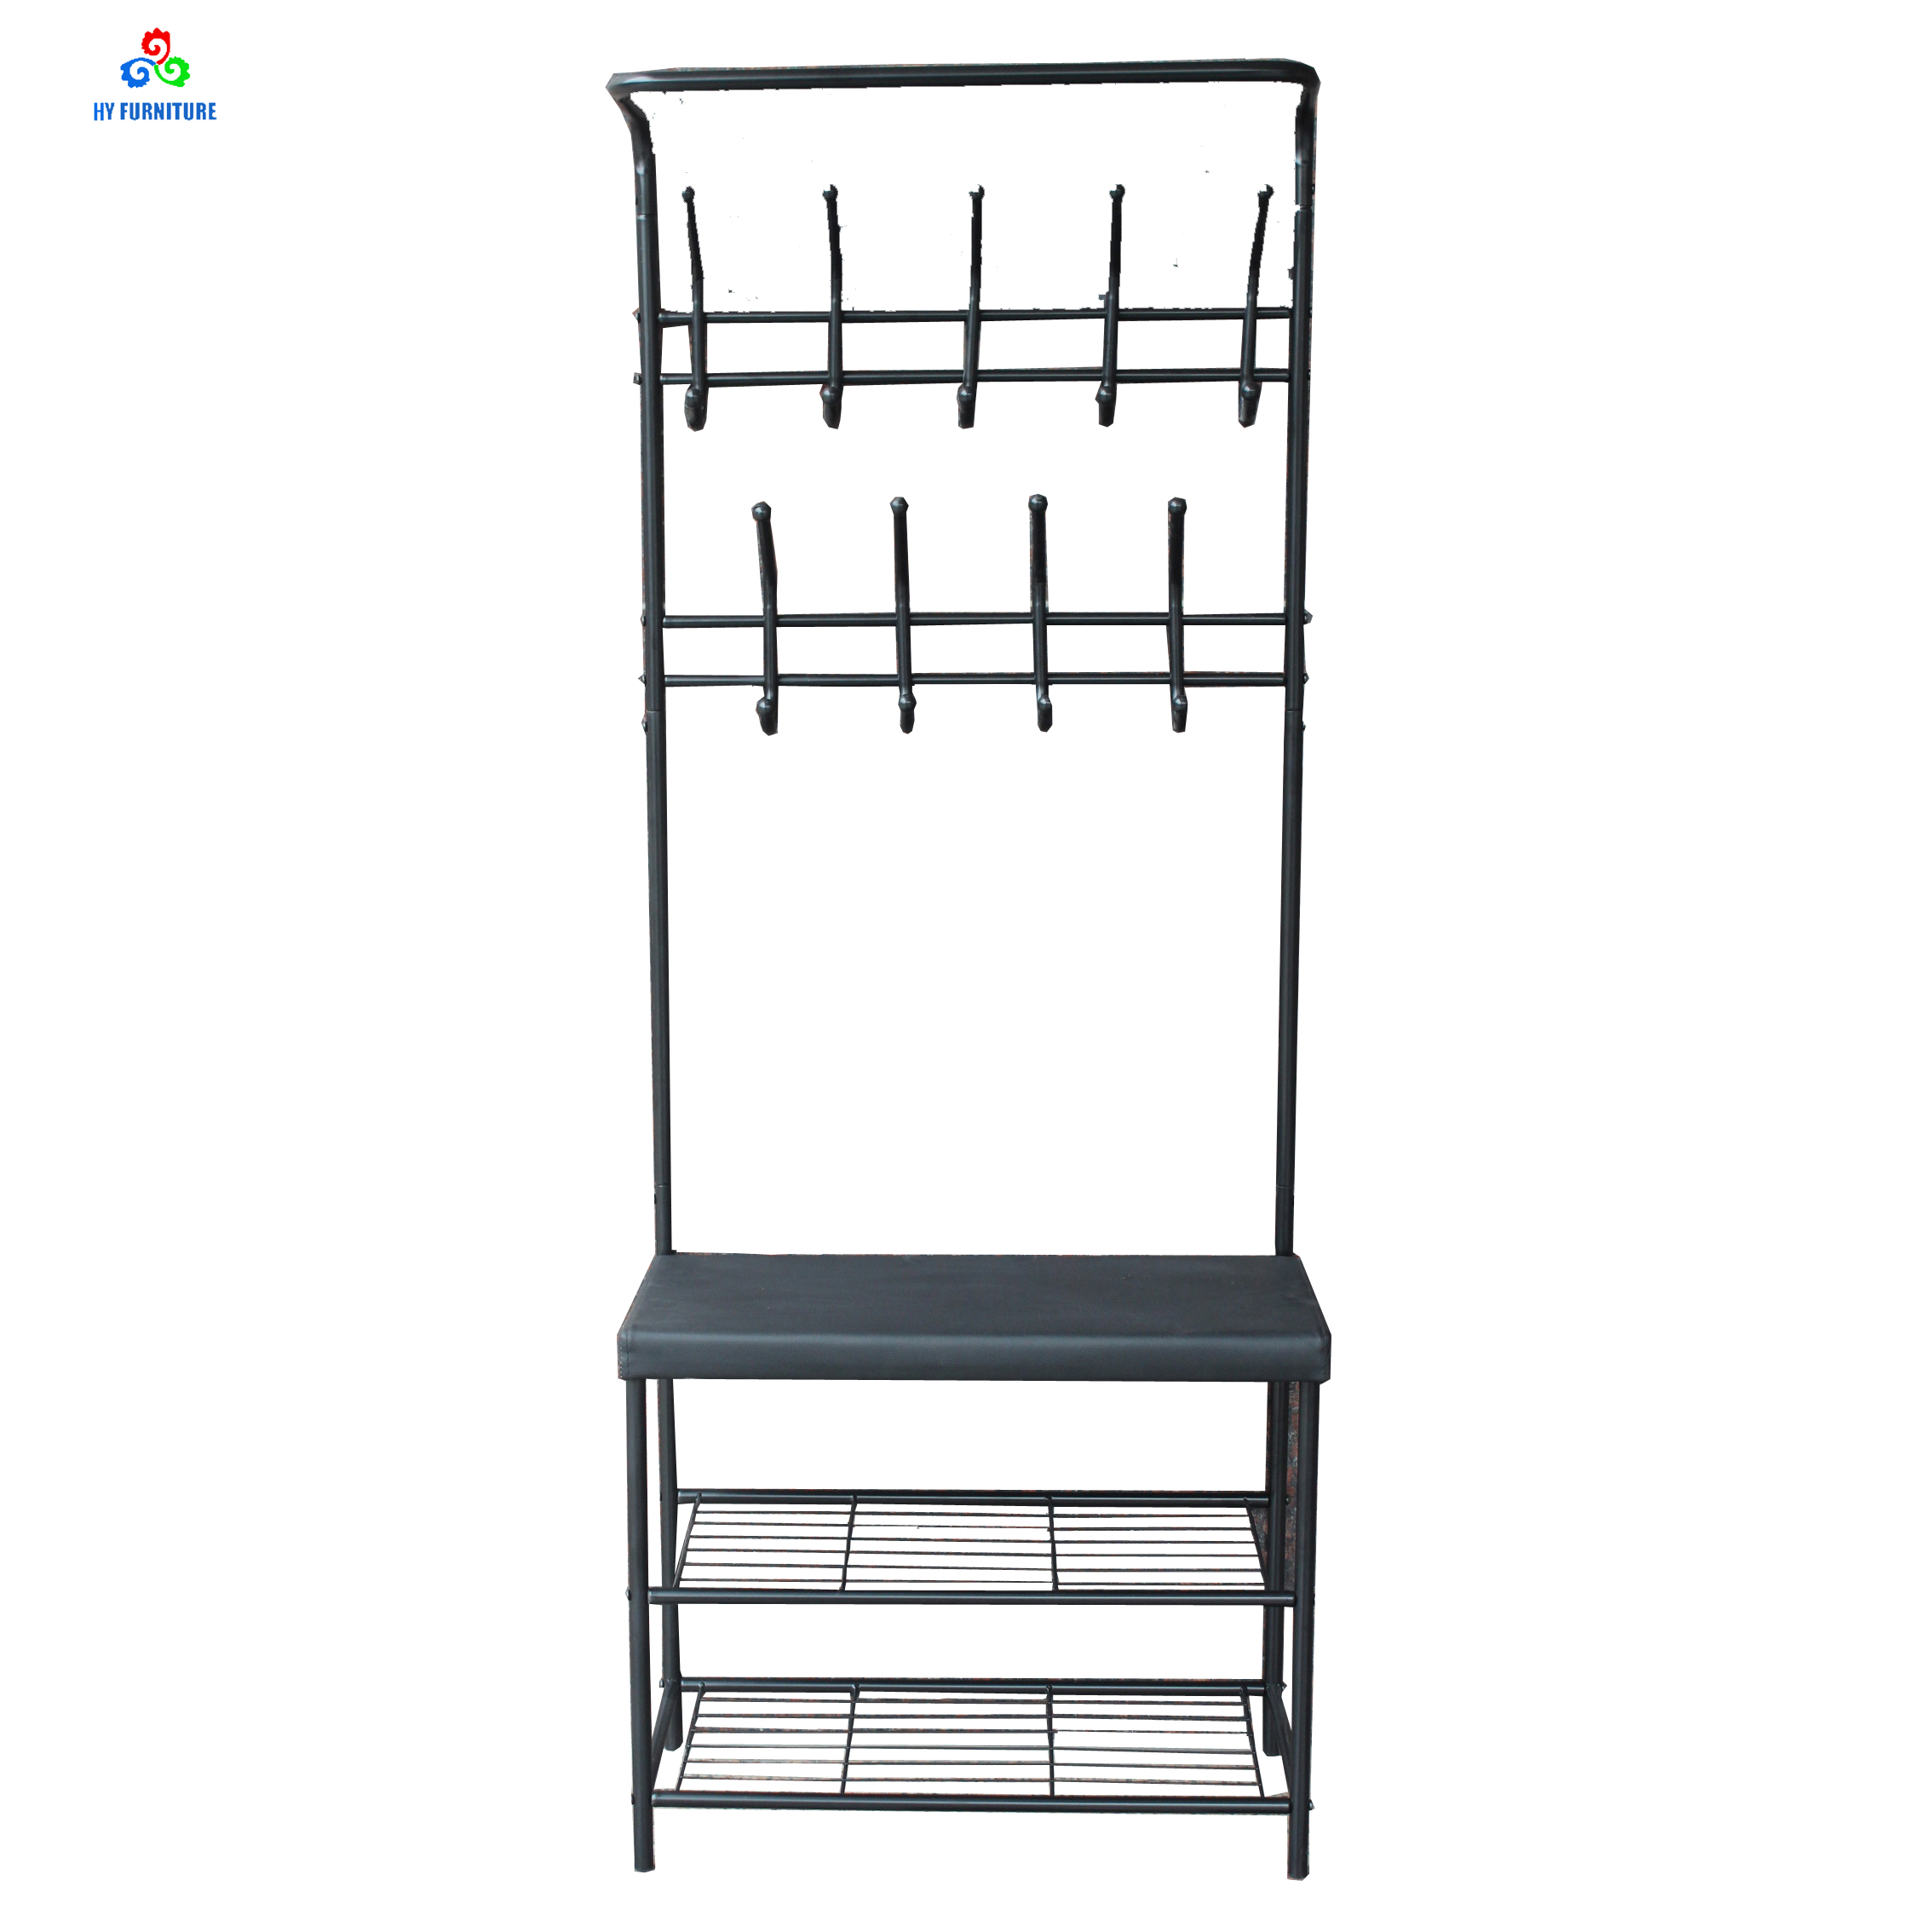 Hallway Organizer Metal Coat Garment Rack Hooks With Shoe Storage Leather Bench Buy Garment Rack Hooks Metal Coat Rack Shoe Storage Leather Bench Product On Alibaba Com